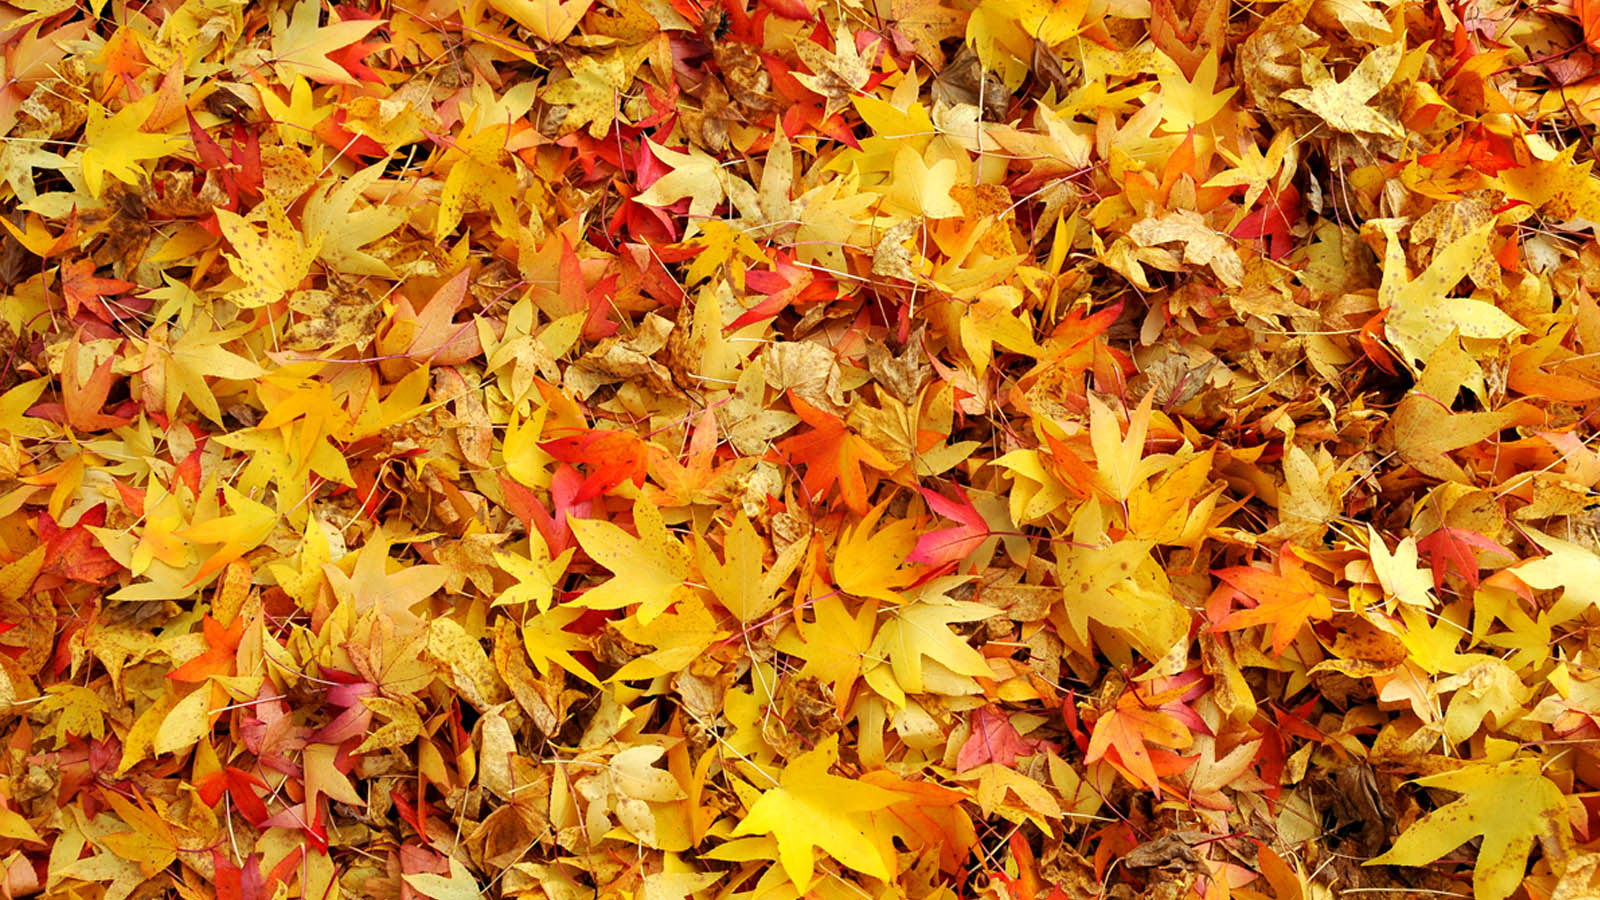 pleasant sounds john clare A friday poem for the autumn equinox by john clare.